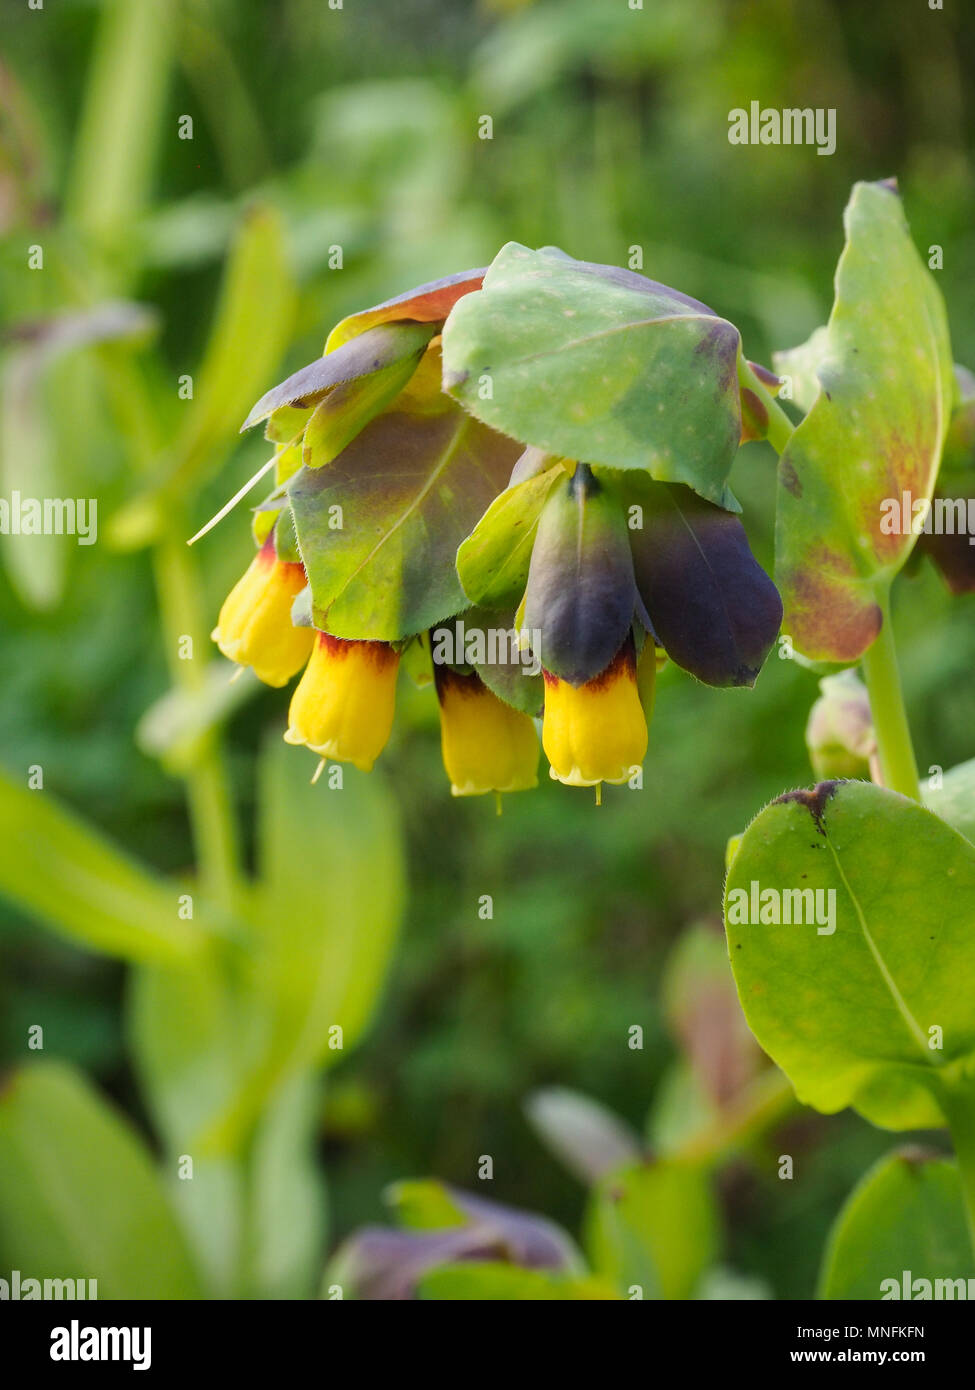 Close up of the yellow tipped flowers of Cerinthe major Yellow Gem - Stock Image